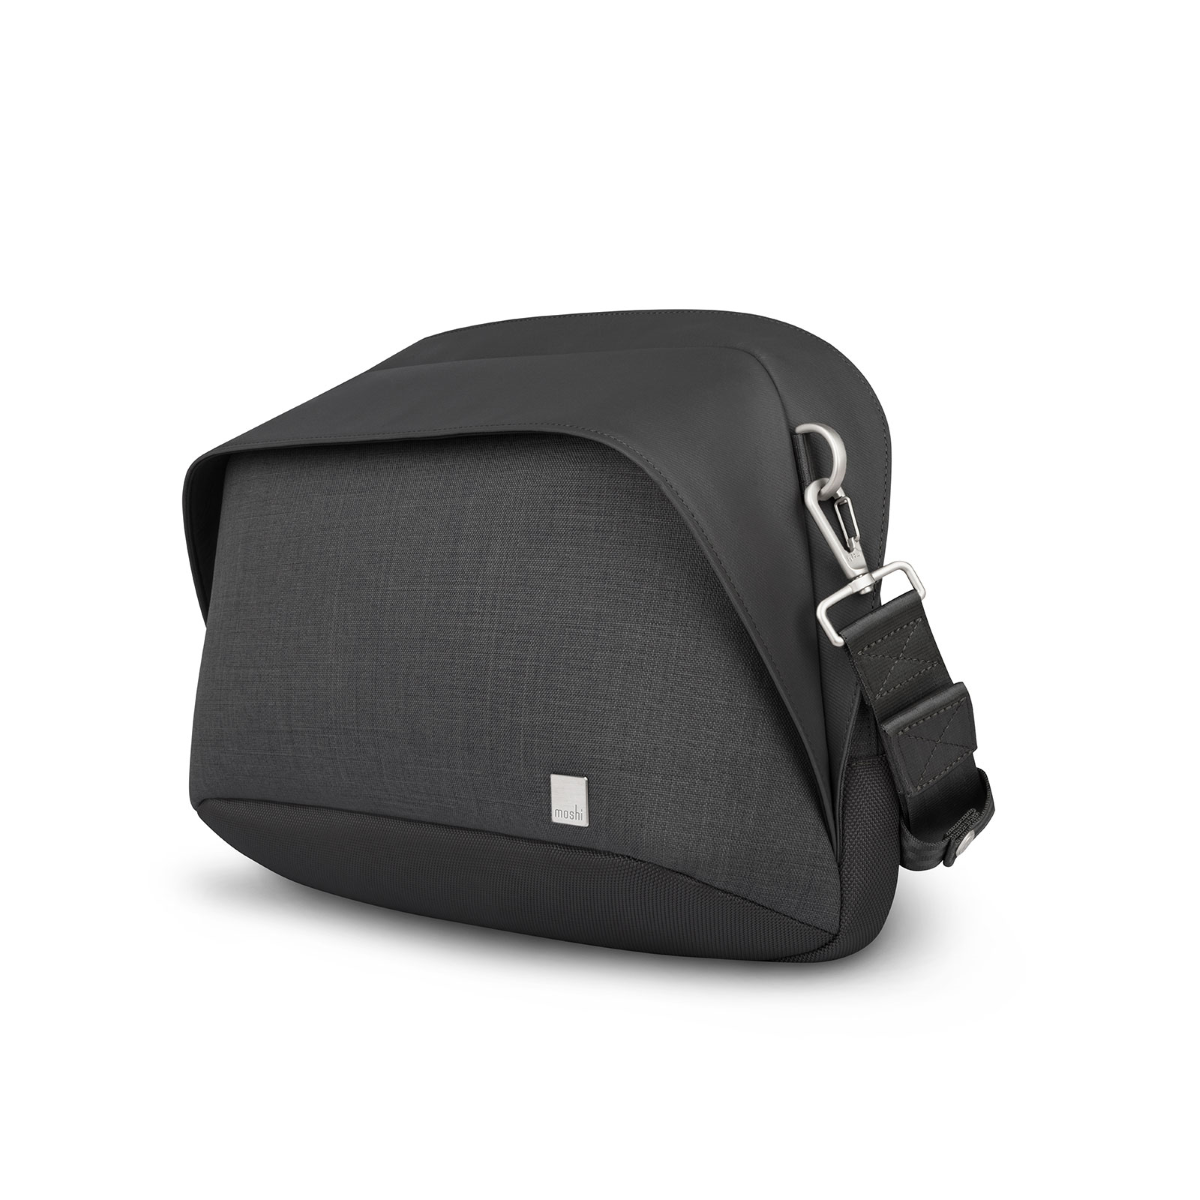 Moshi Tego Sling Bag - Lightweight, Durable and Weather-Resistant